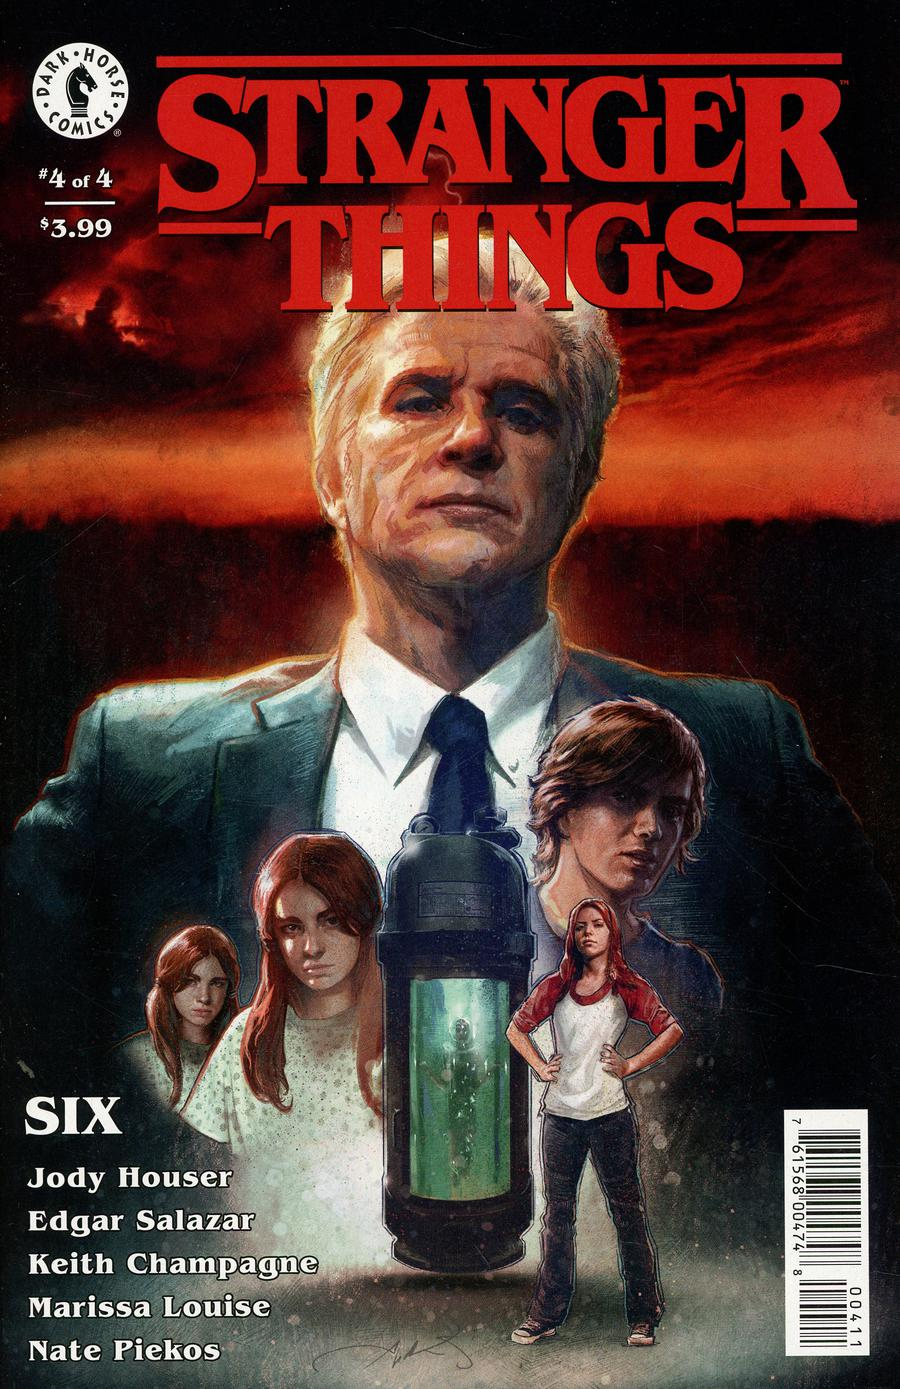 Stranger Things Six #4 Cover A Regular Aleksi Briclot Cover